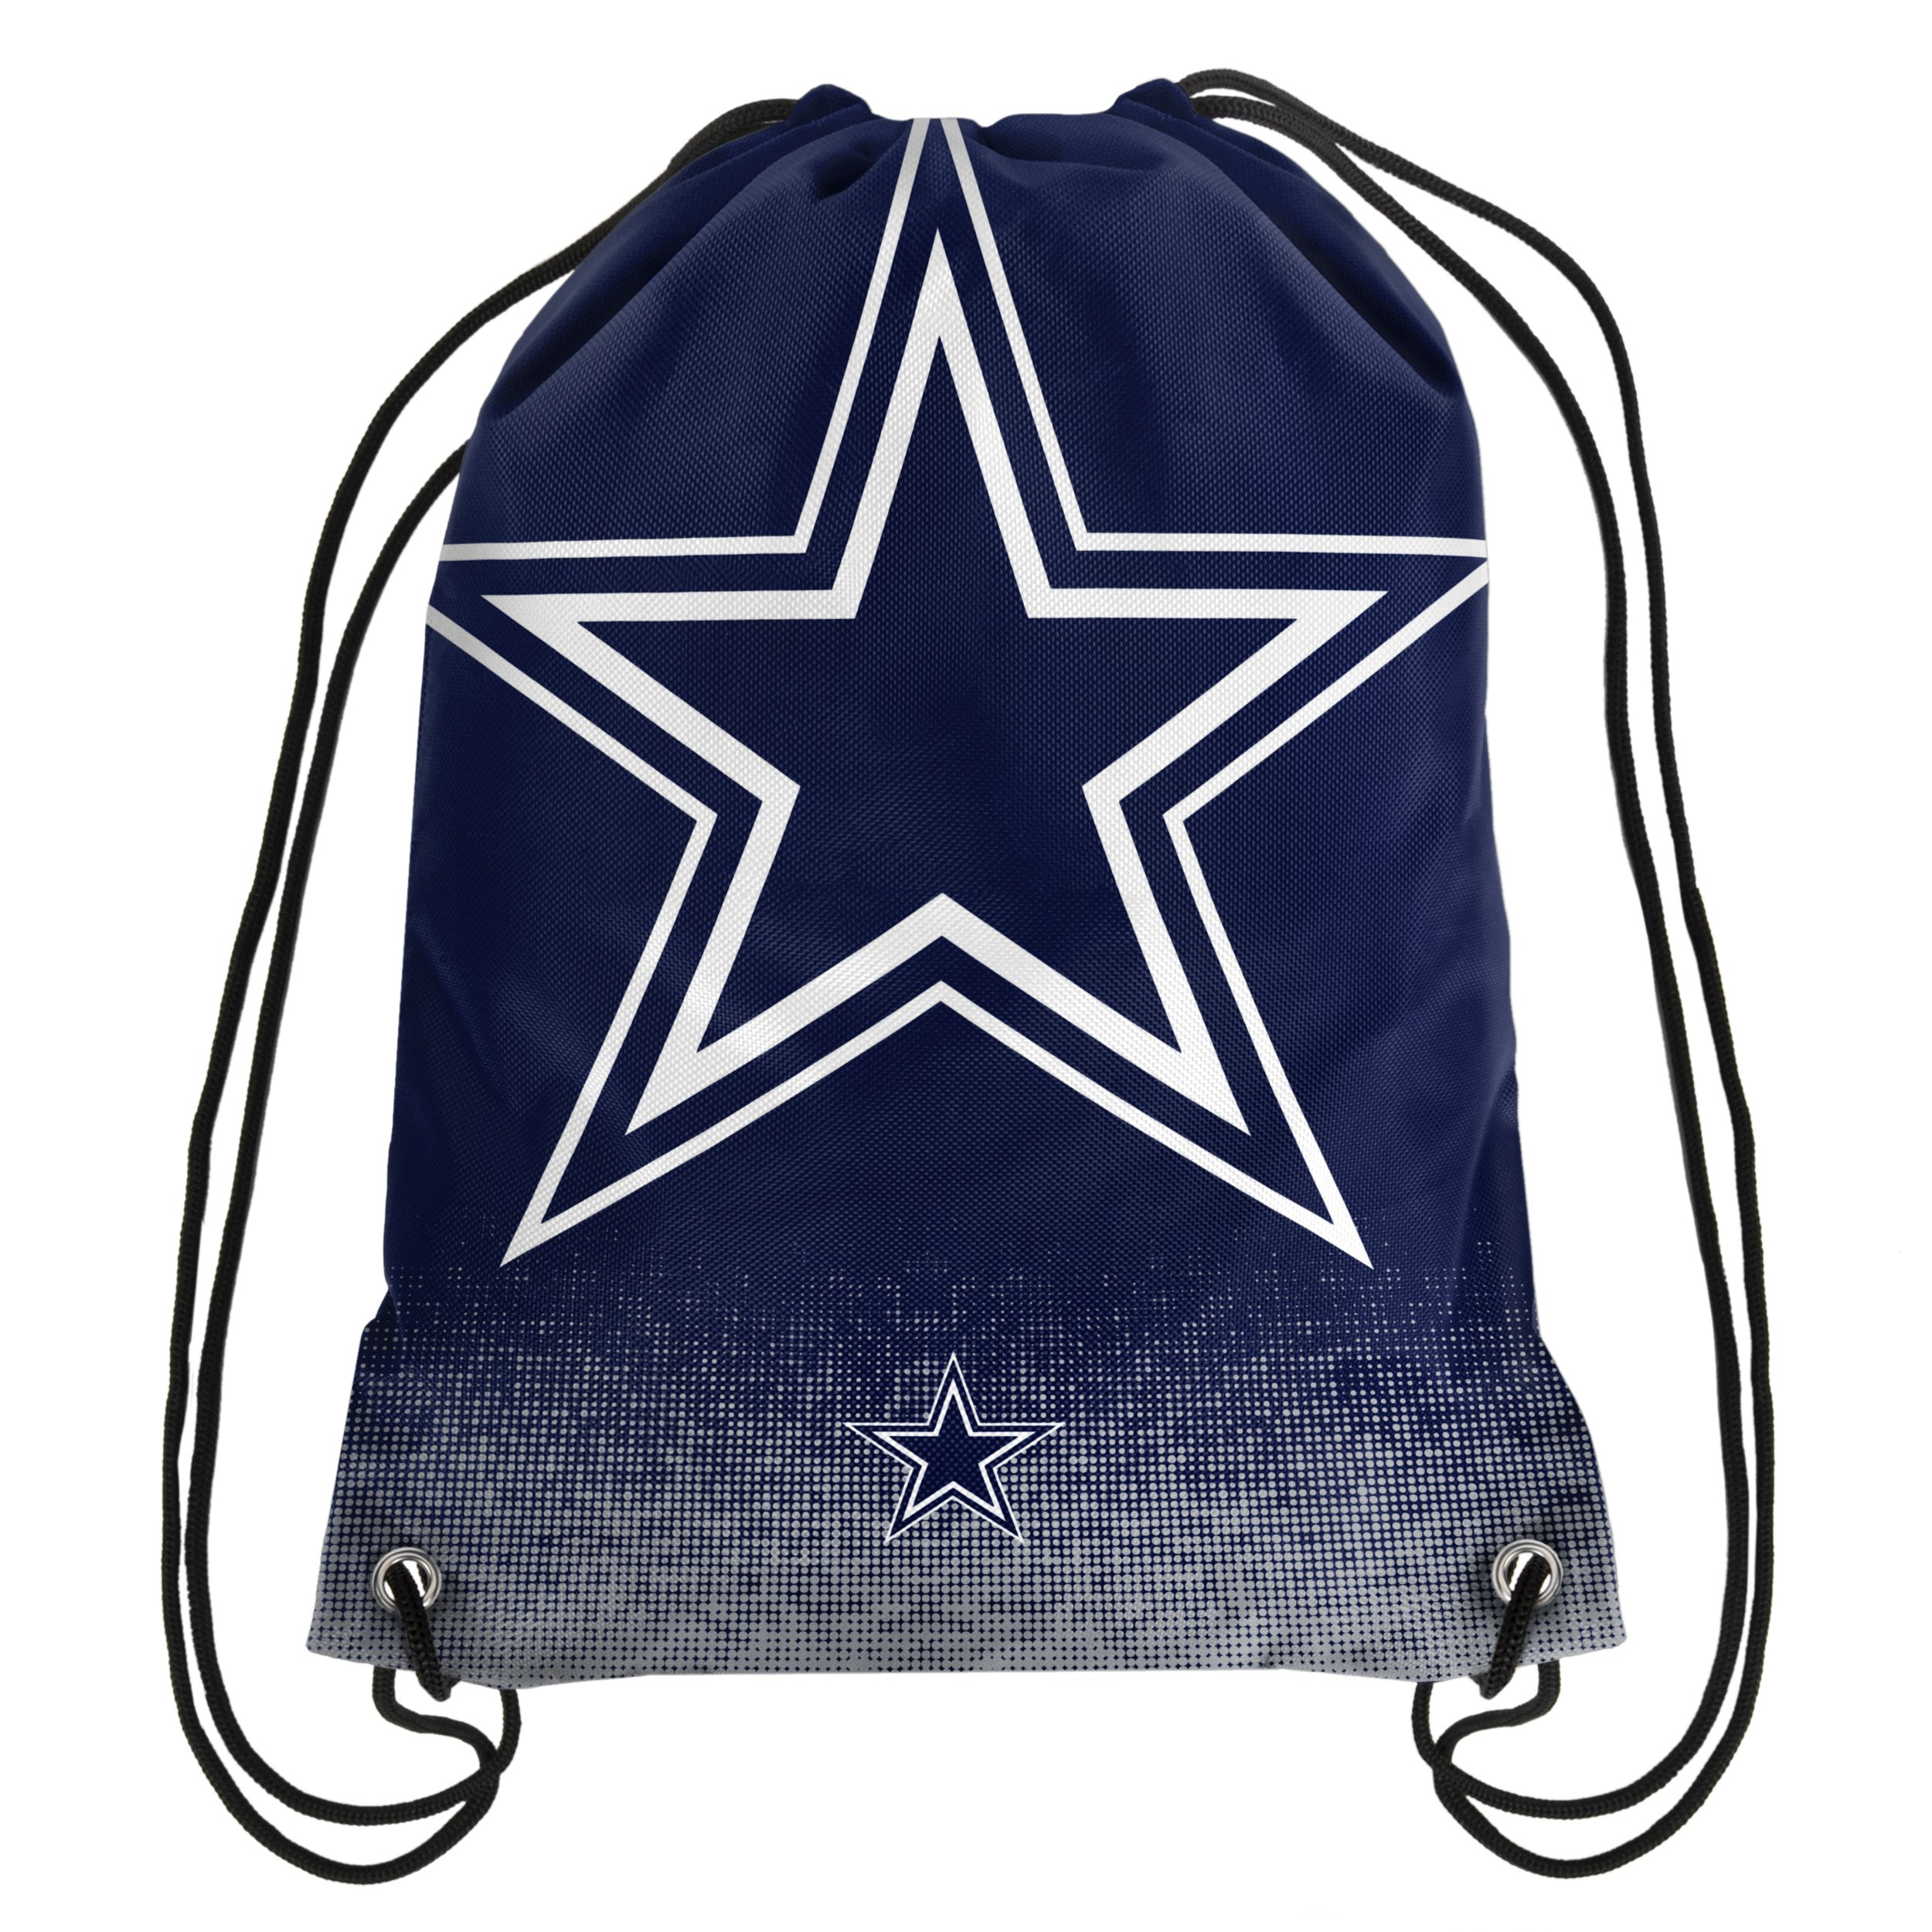 Forever Collectibles NFL Unisex Gradient Drawstring Backpackgradient Drawstring Backpack, Dallas Cowboys, Standard